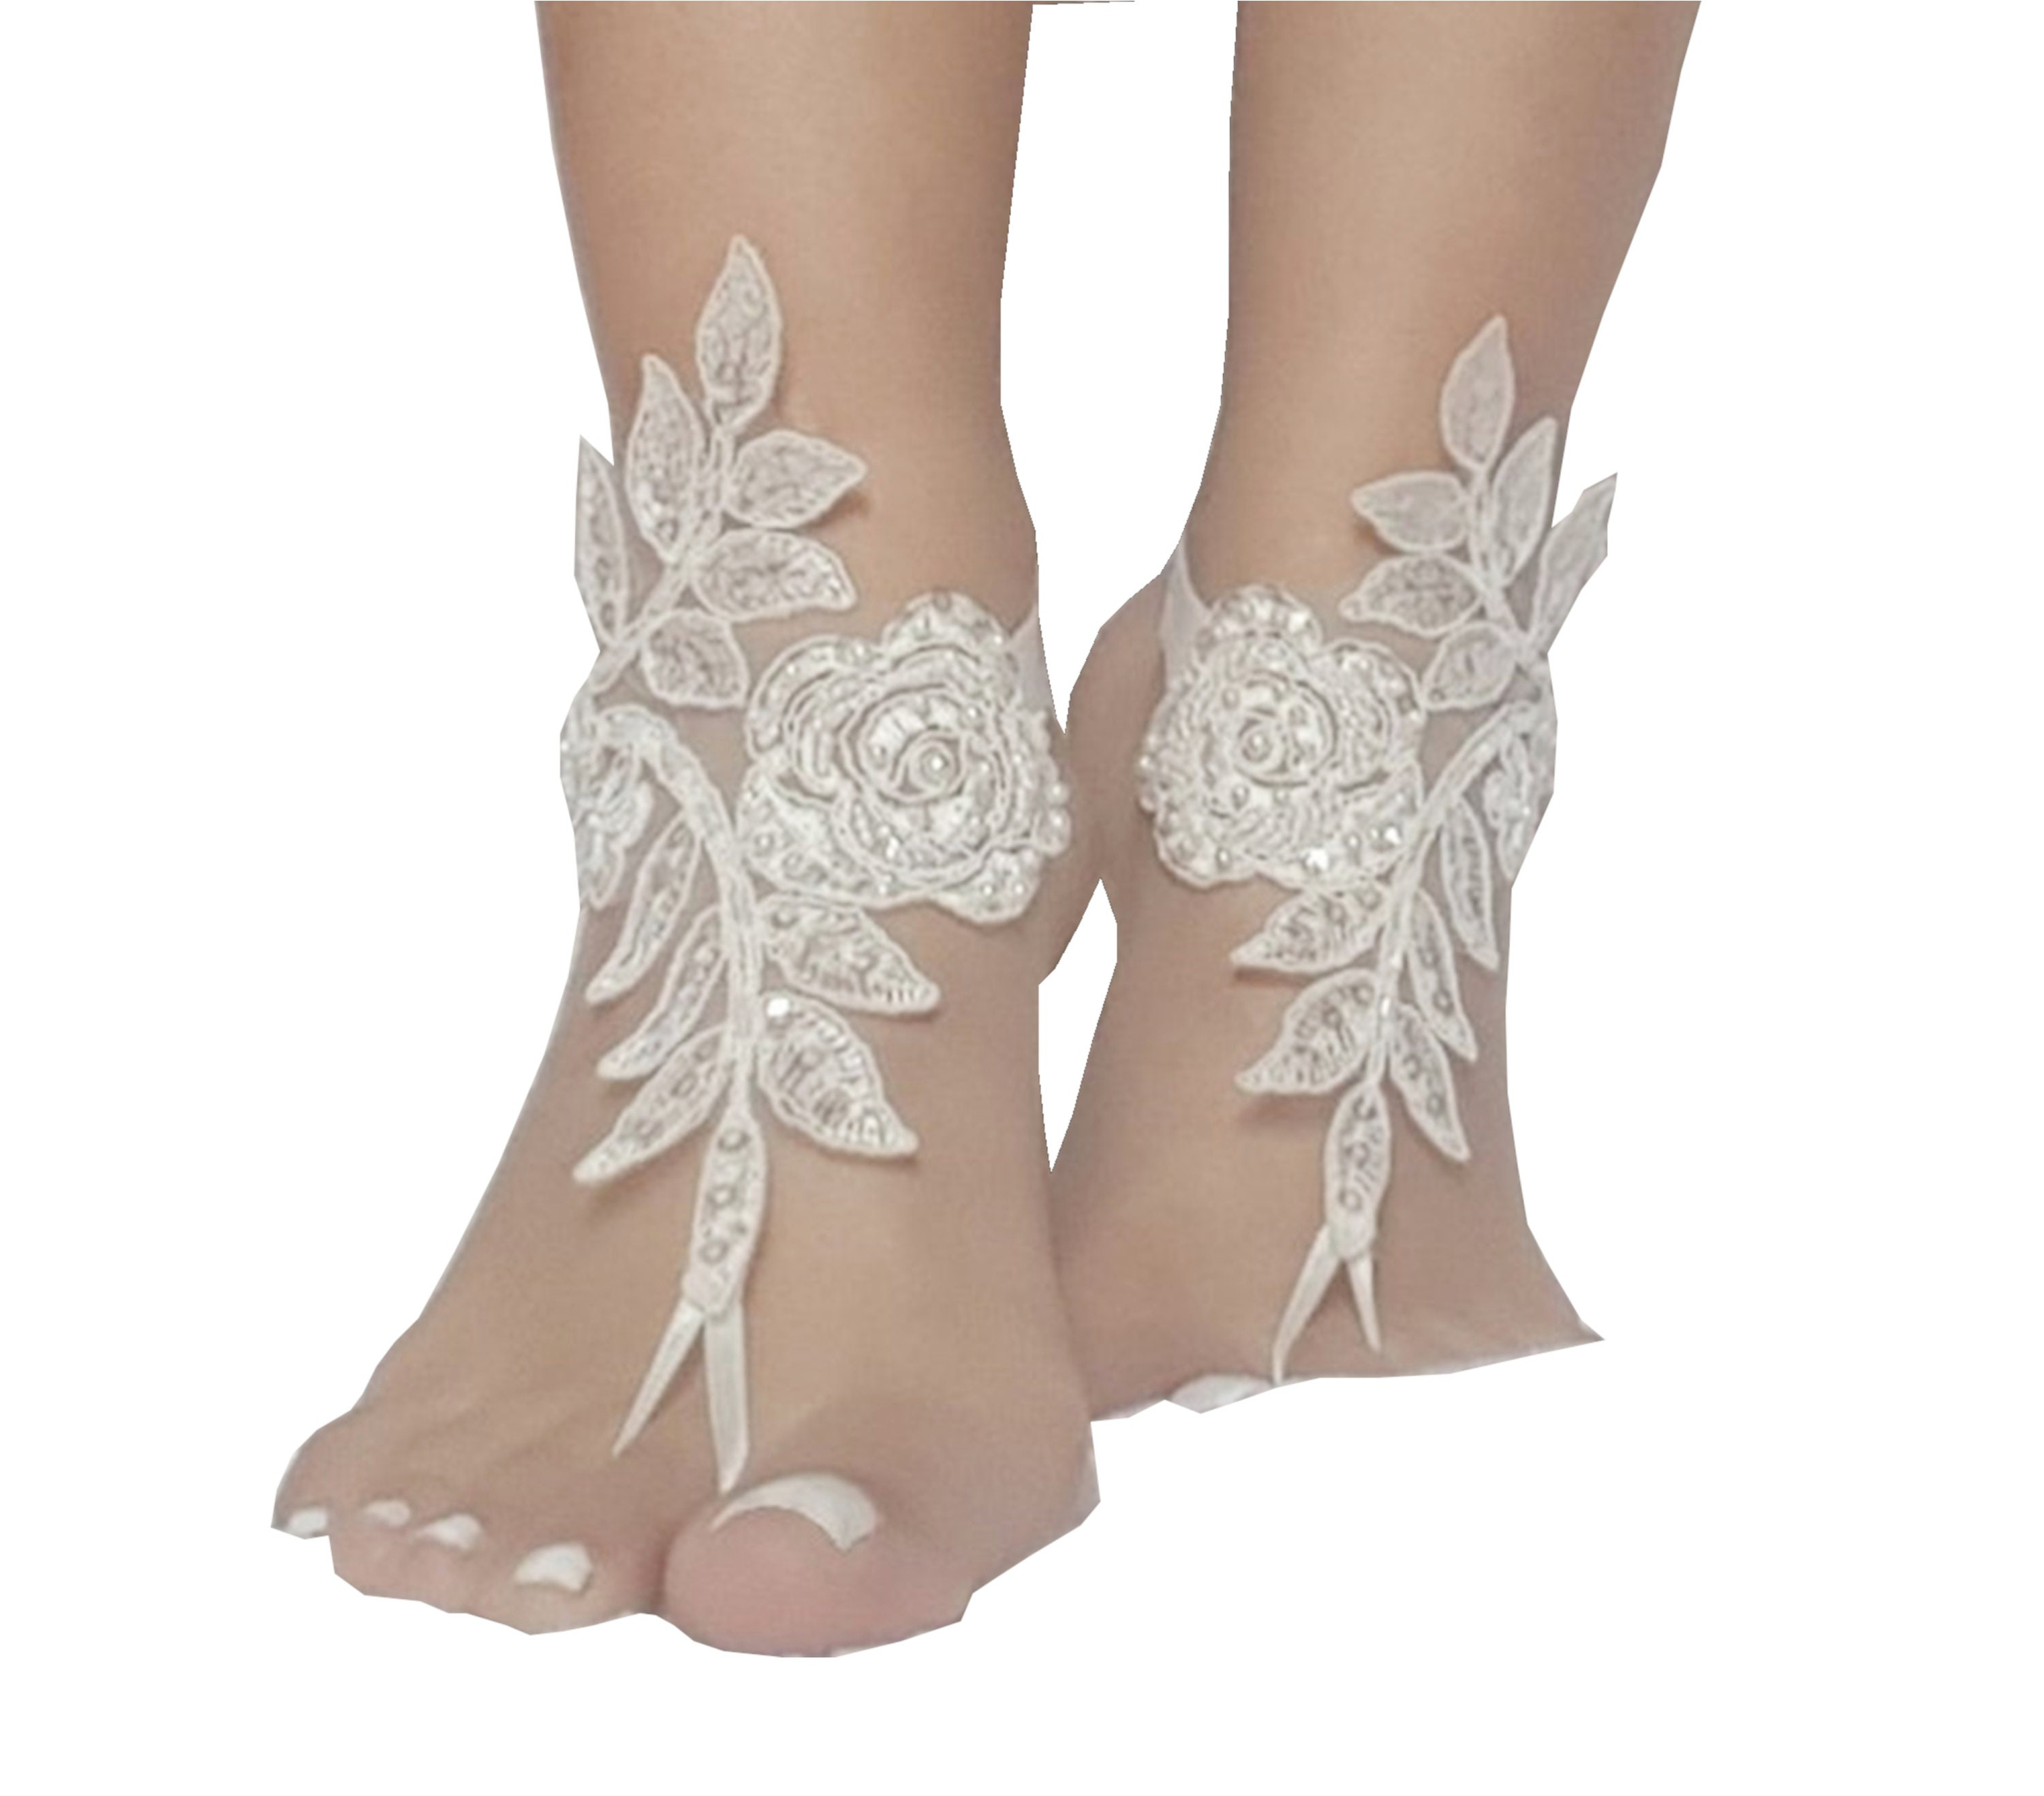 7c0283ef9 24 color Bridal barefoot sandals beach wedding barefoot sandal footwear  footgear lace barefoot shoes bridal shoes white ivory champagne